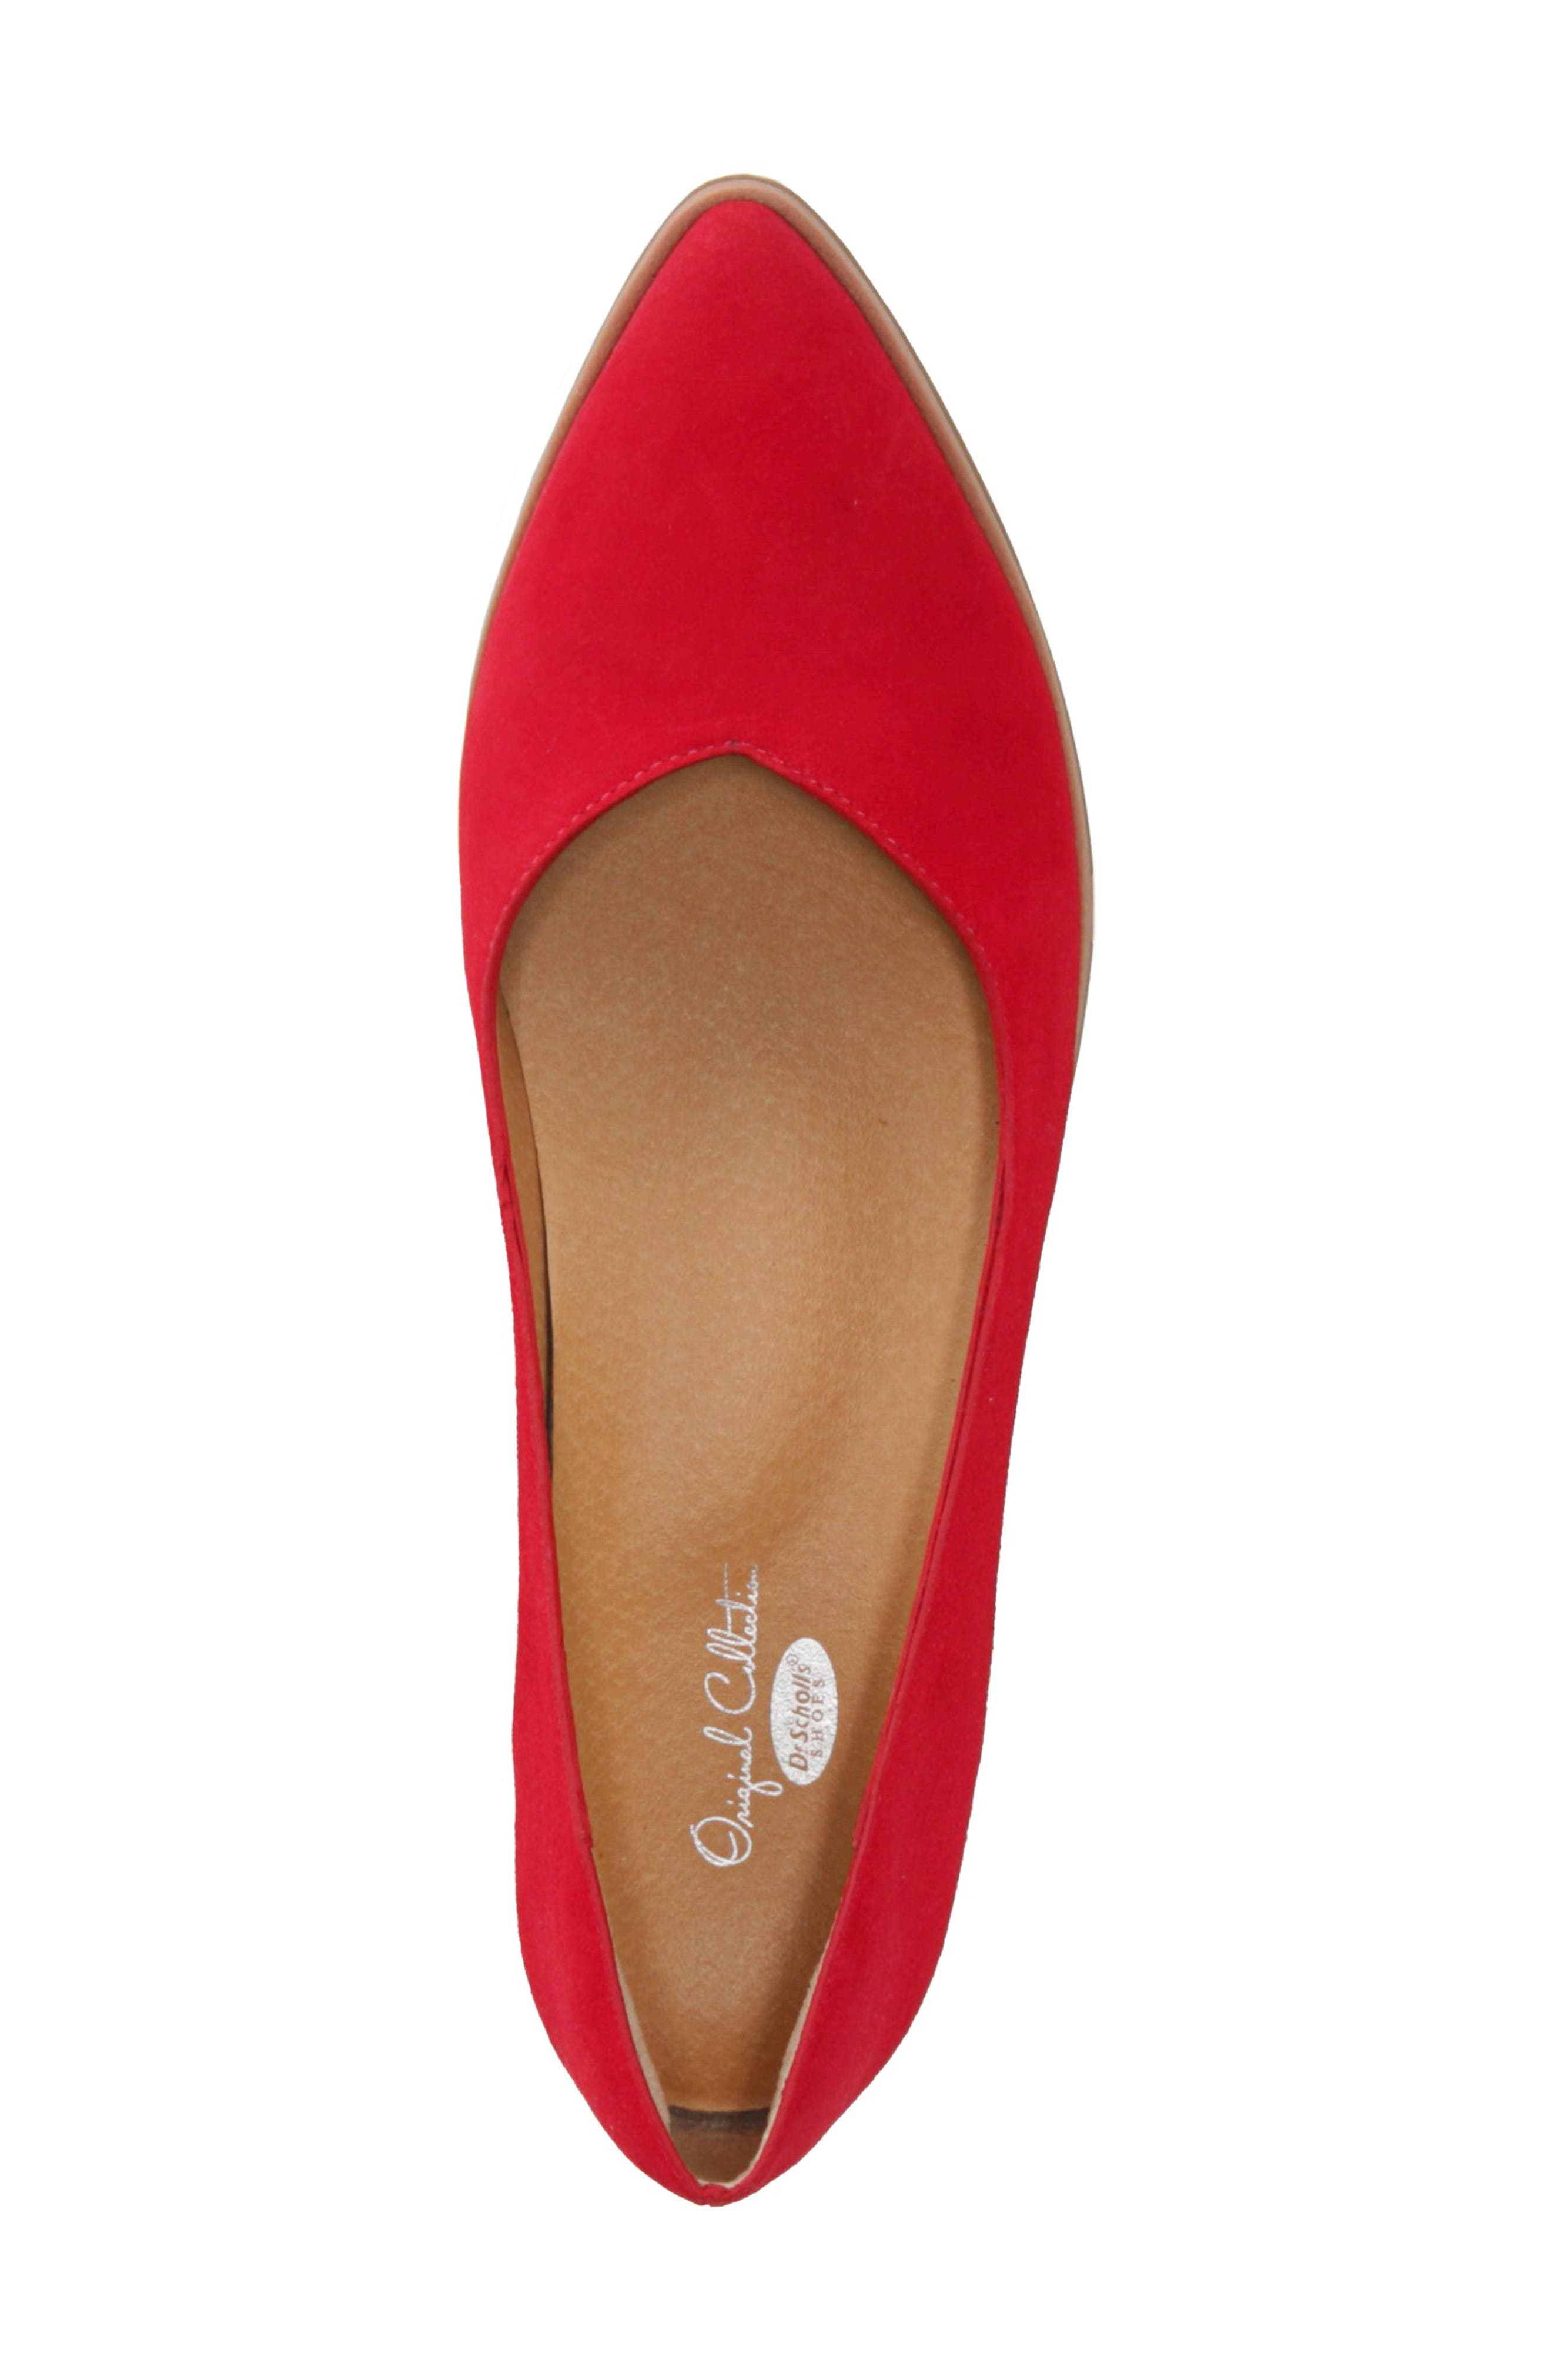 Dr. Scholls Flair Flat,                             Alternate thumbnail 5, color,                             RED LEATHER